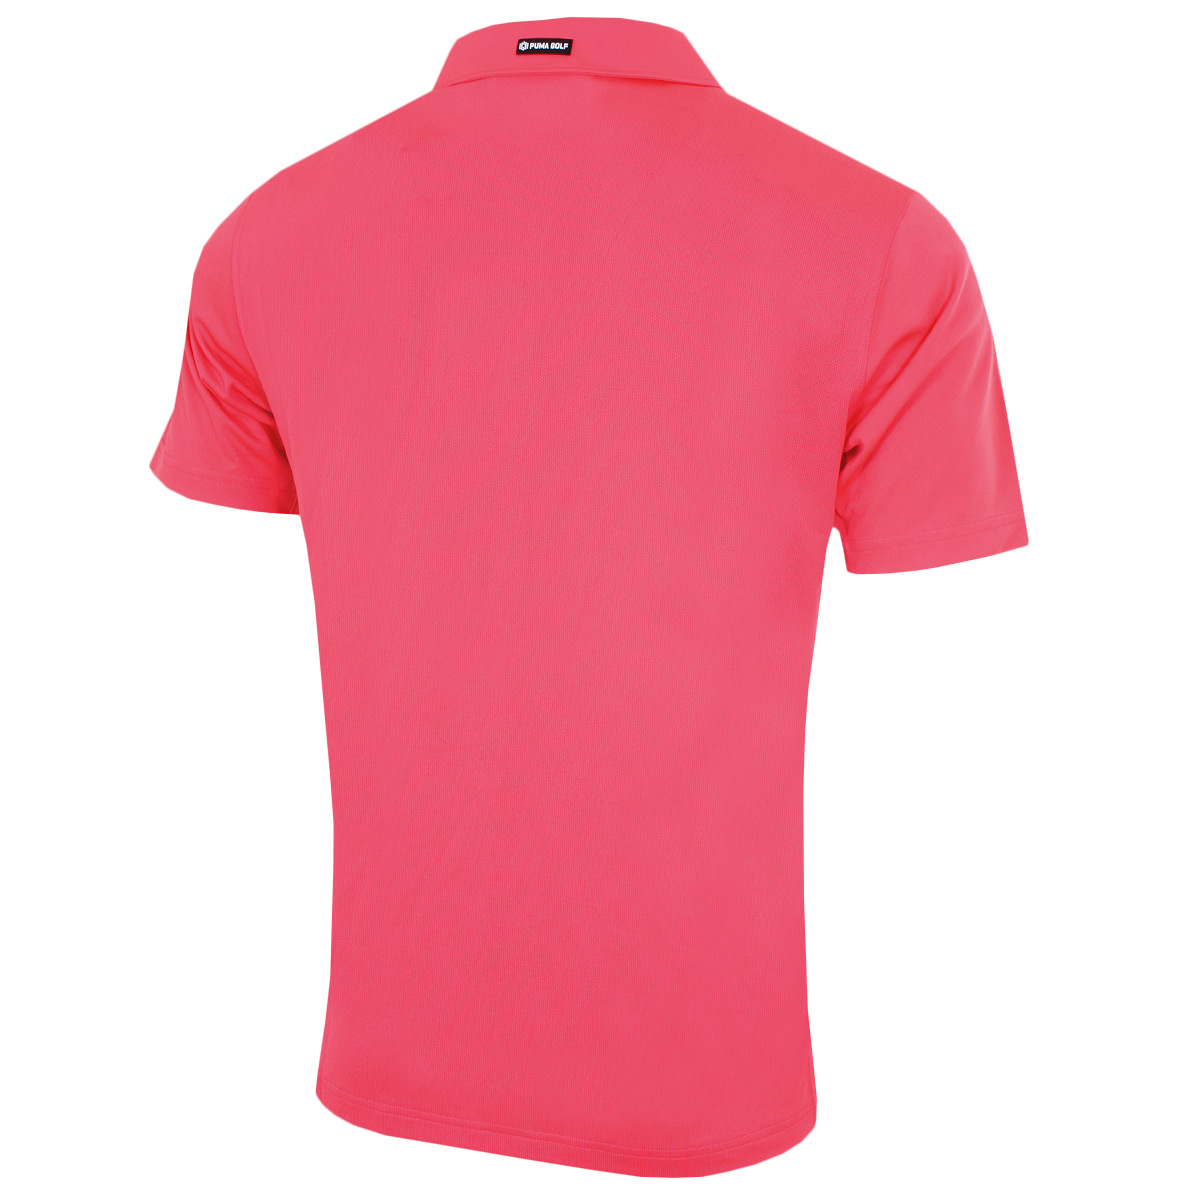 Puma-Golf-Mens-Essential-Pounce-Polo-Shirt-DryCell-Lightweight-Tech-43-OFF-RRP thumbnail 15